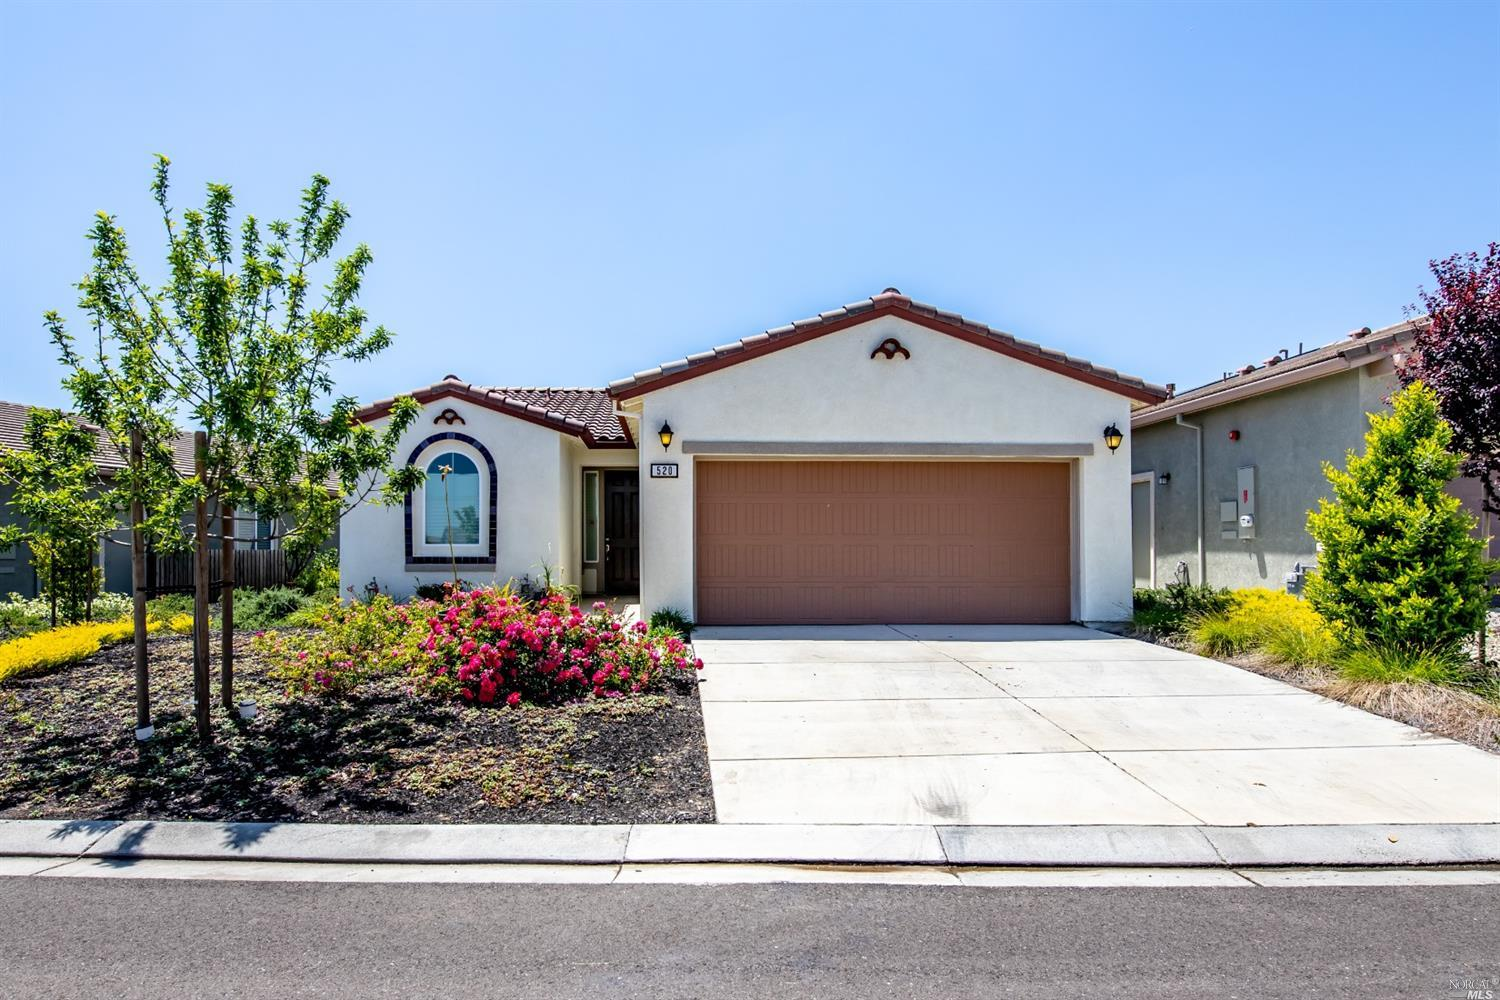 Welcome to the Trilogy, an active 55+ adult community! This 2 bedroom 2 bathroom home features a gou